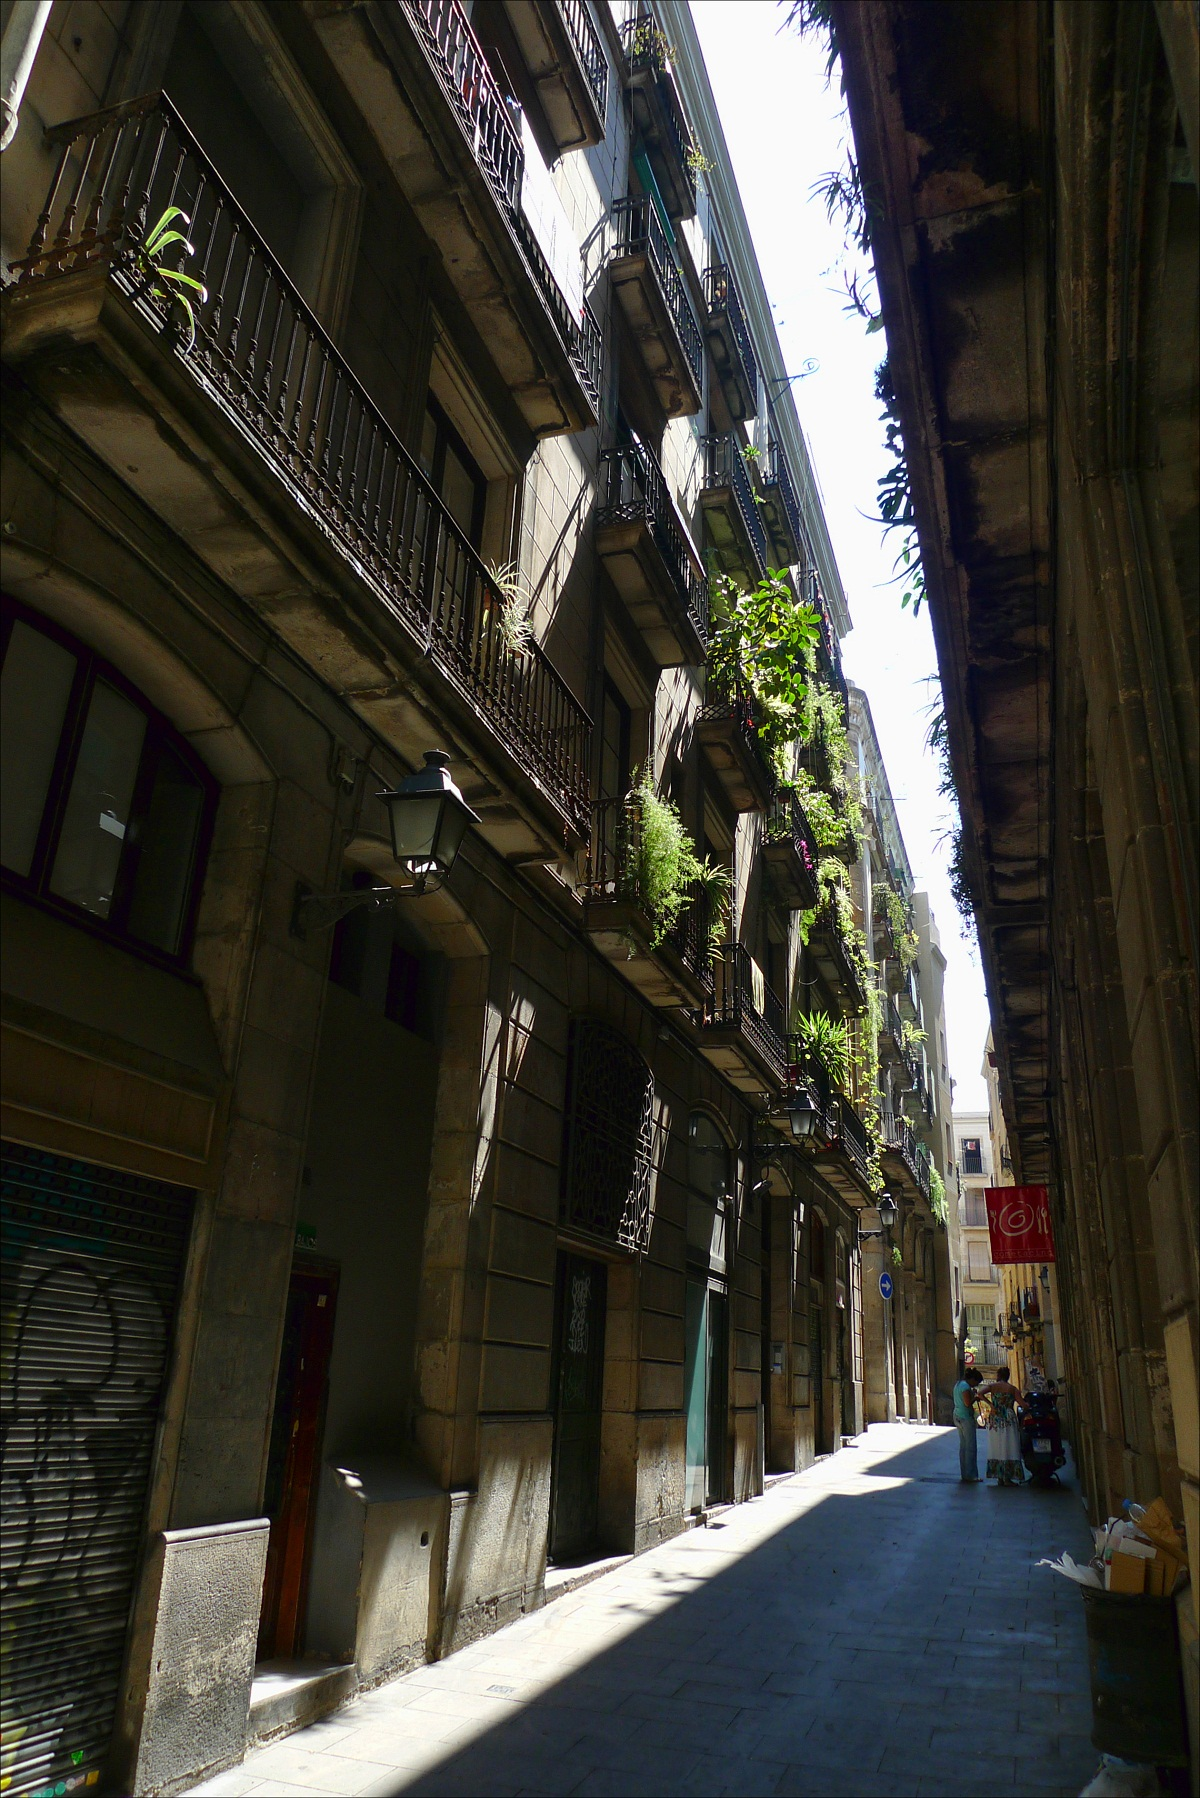 Barcelona Architecture, Spain, Streets 09